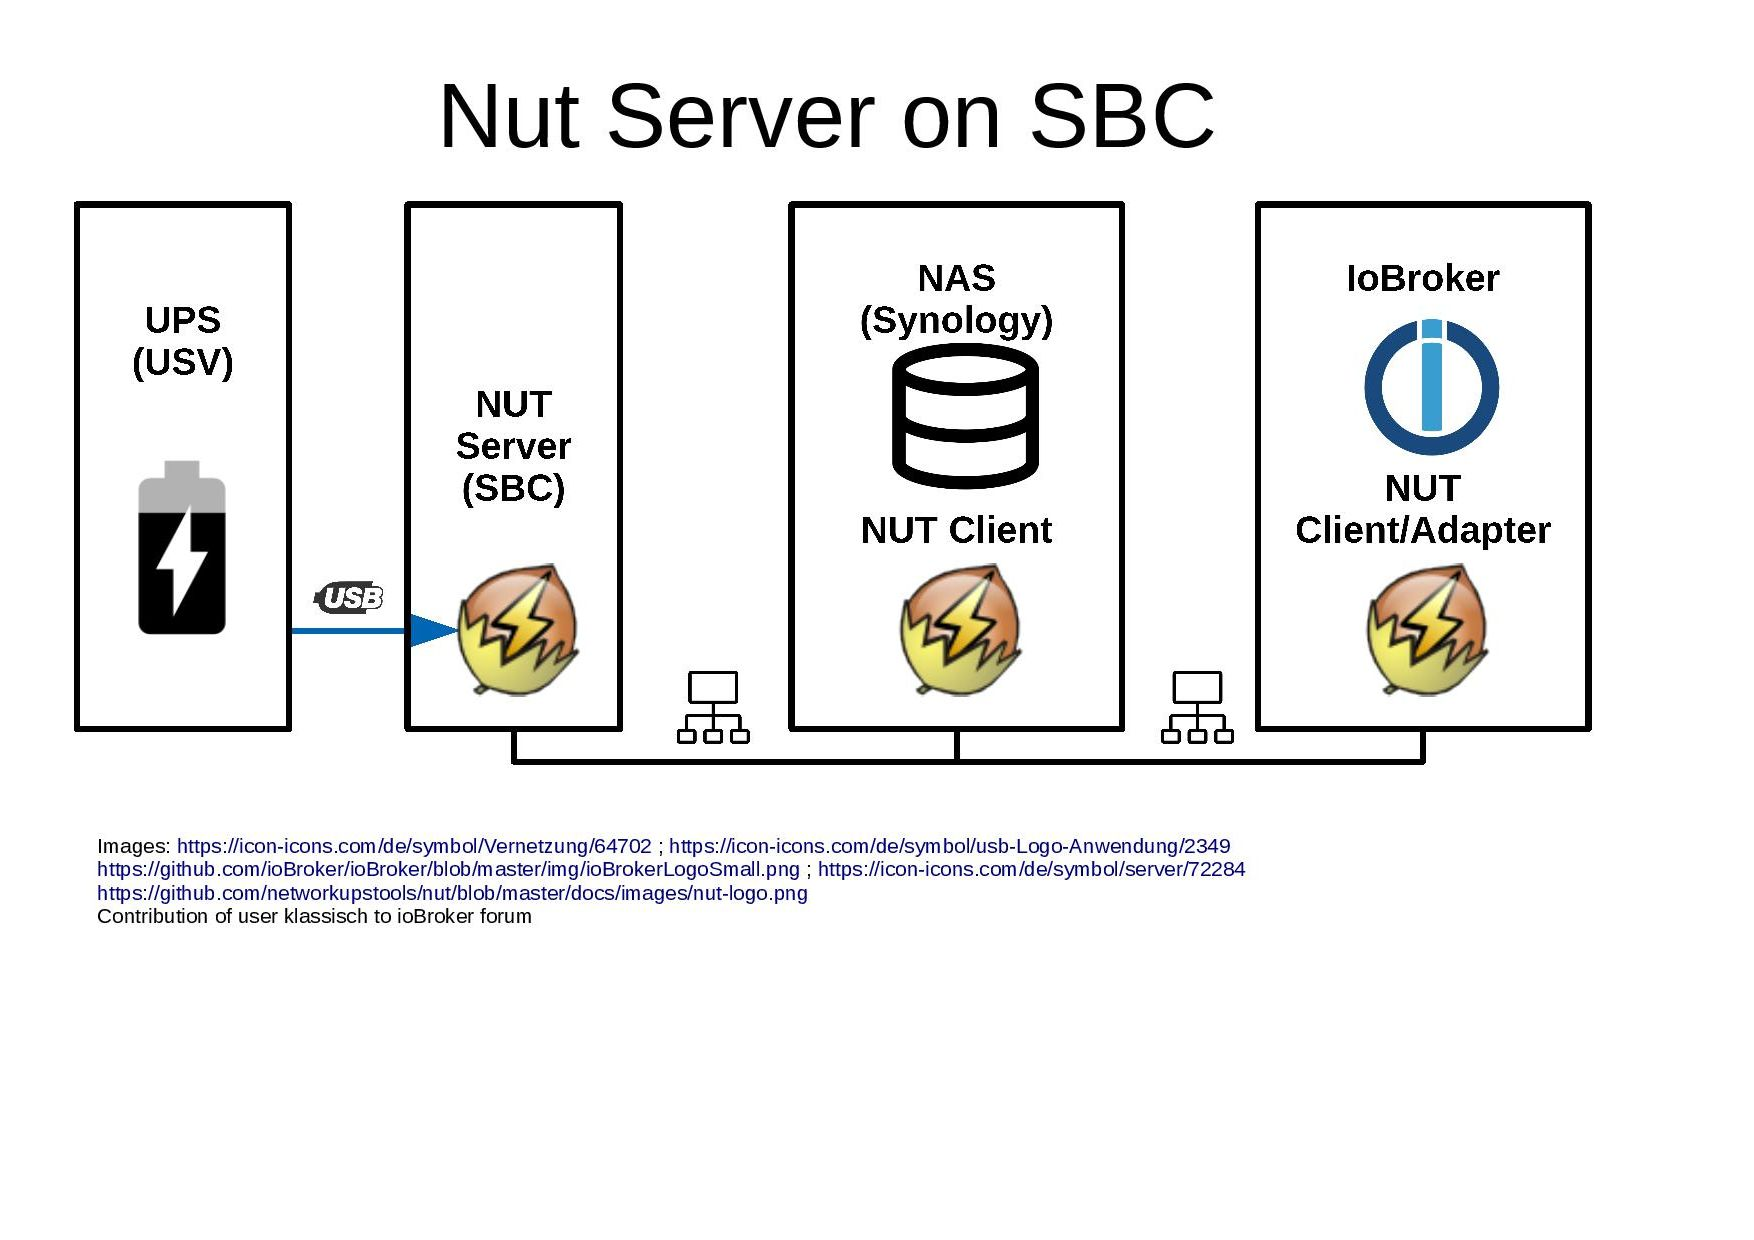 Nut-via-SBC1.jpg